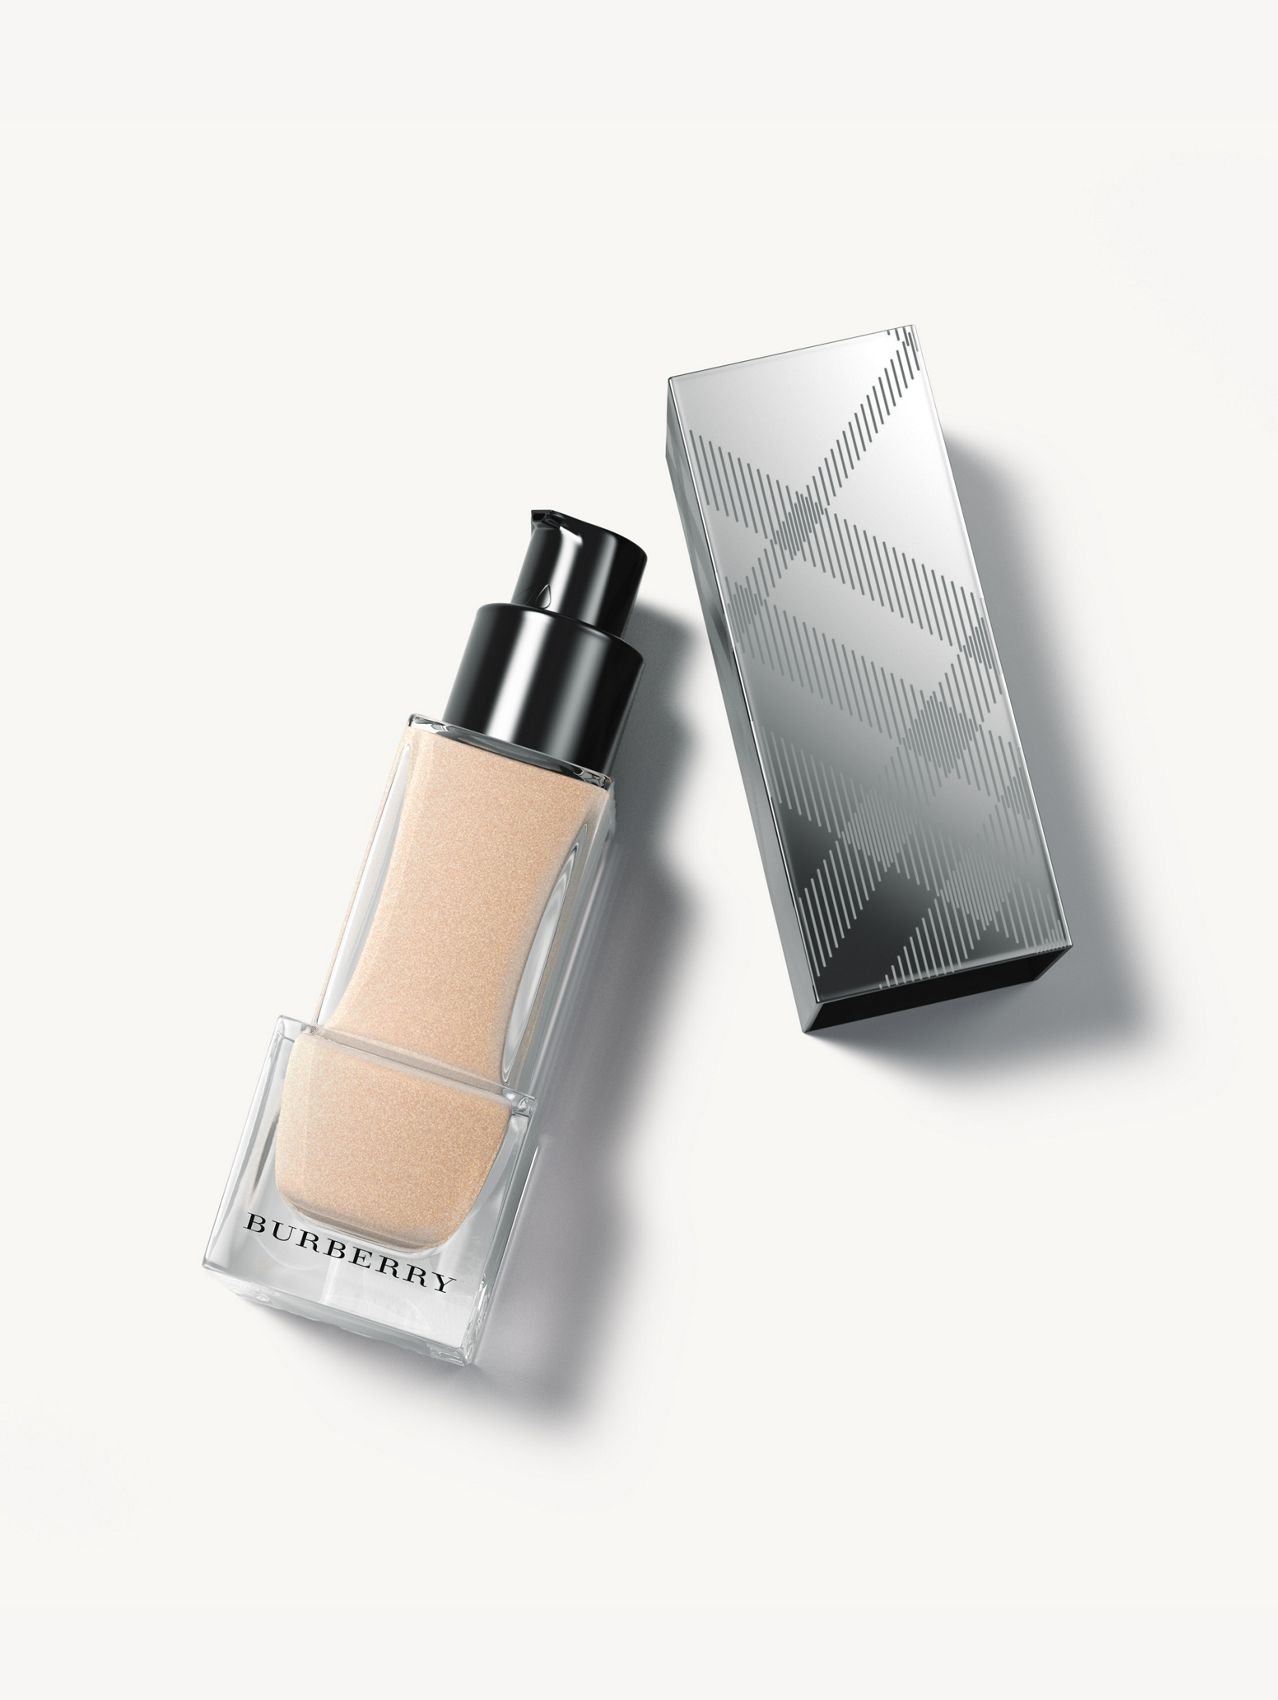 Fresh Glow Luminous Fluid Base – Nude Radiance No.01 in Radiance 01